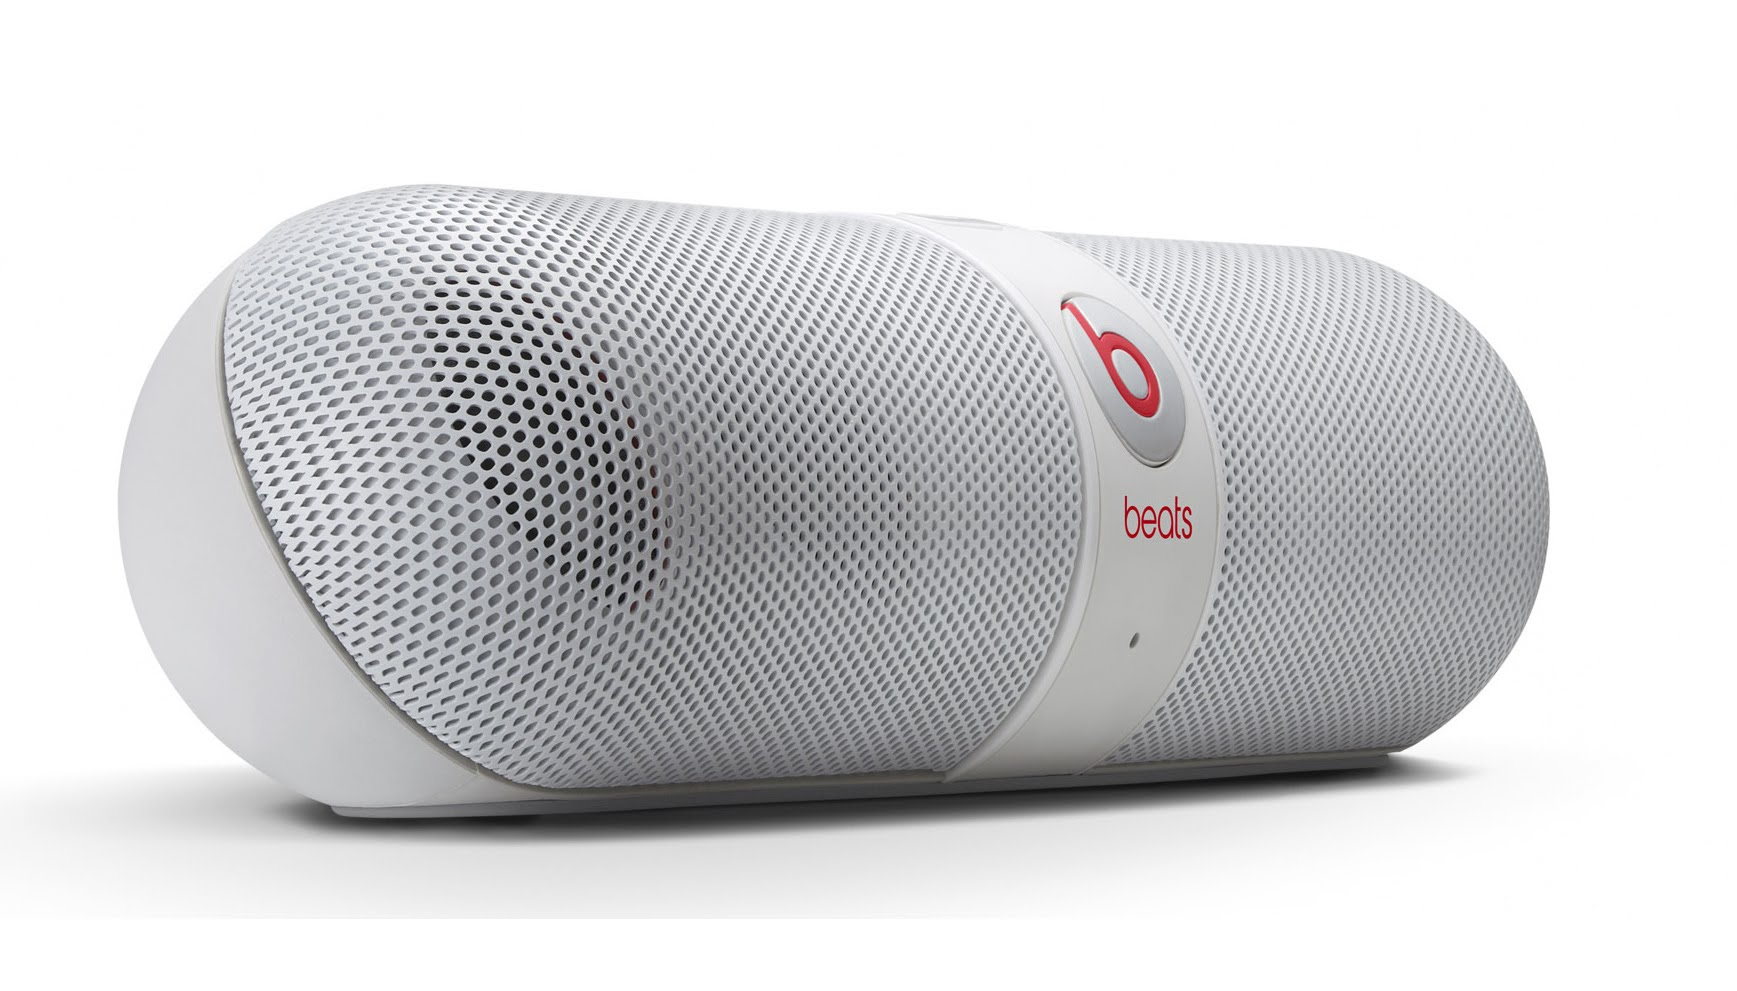 Altoparlante Beats Pill Bluetooth